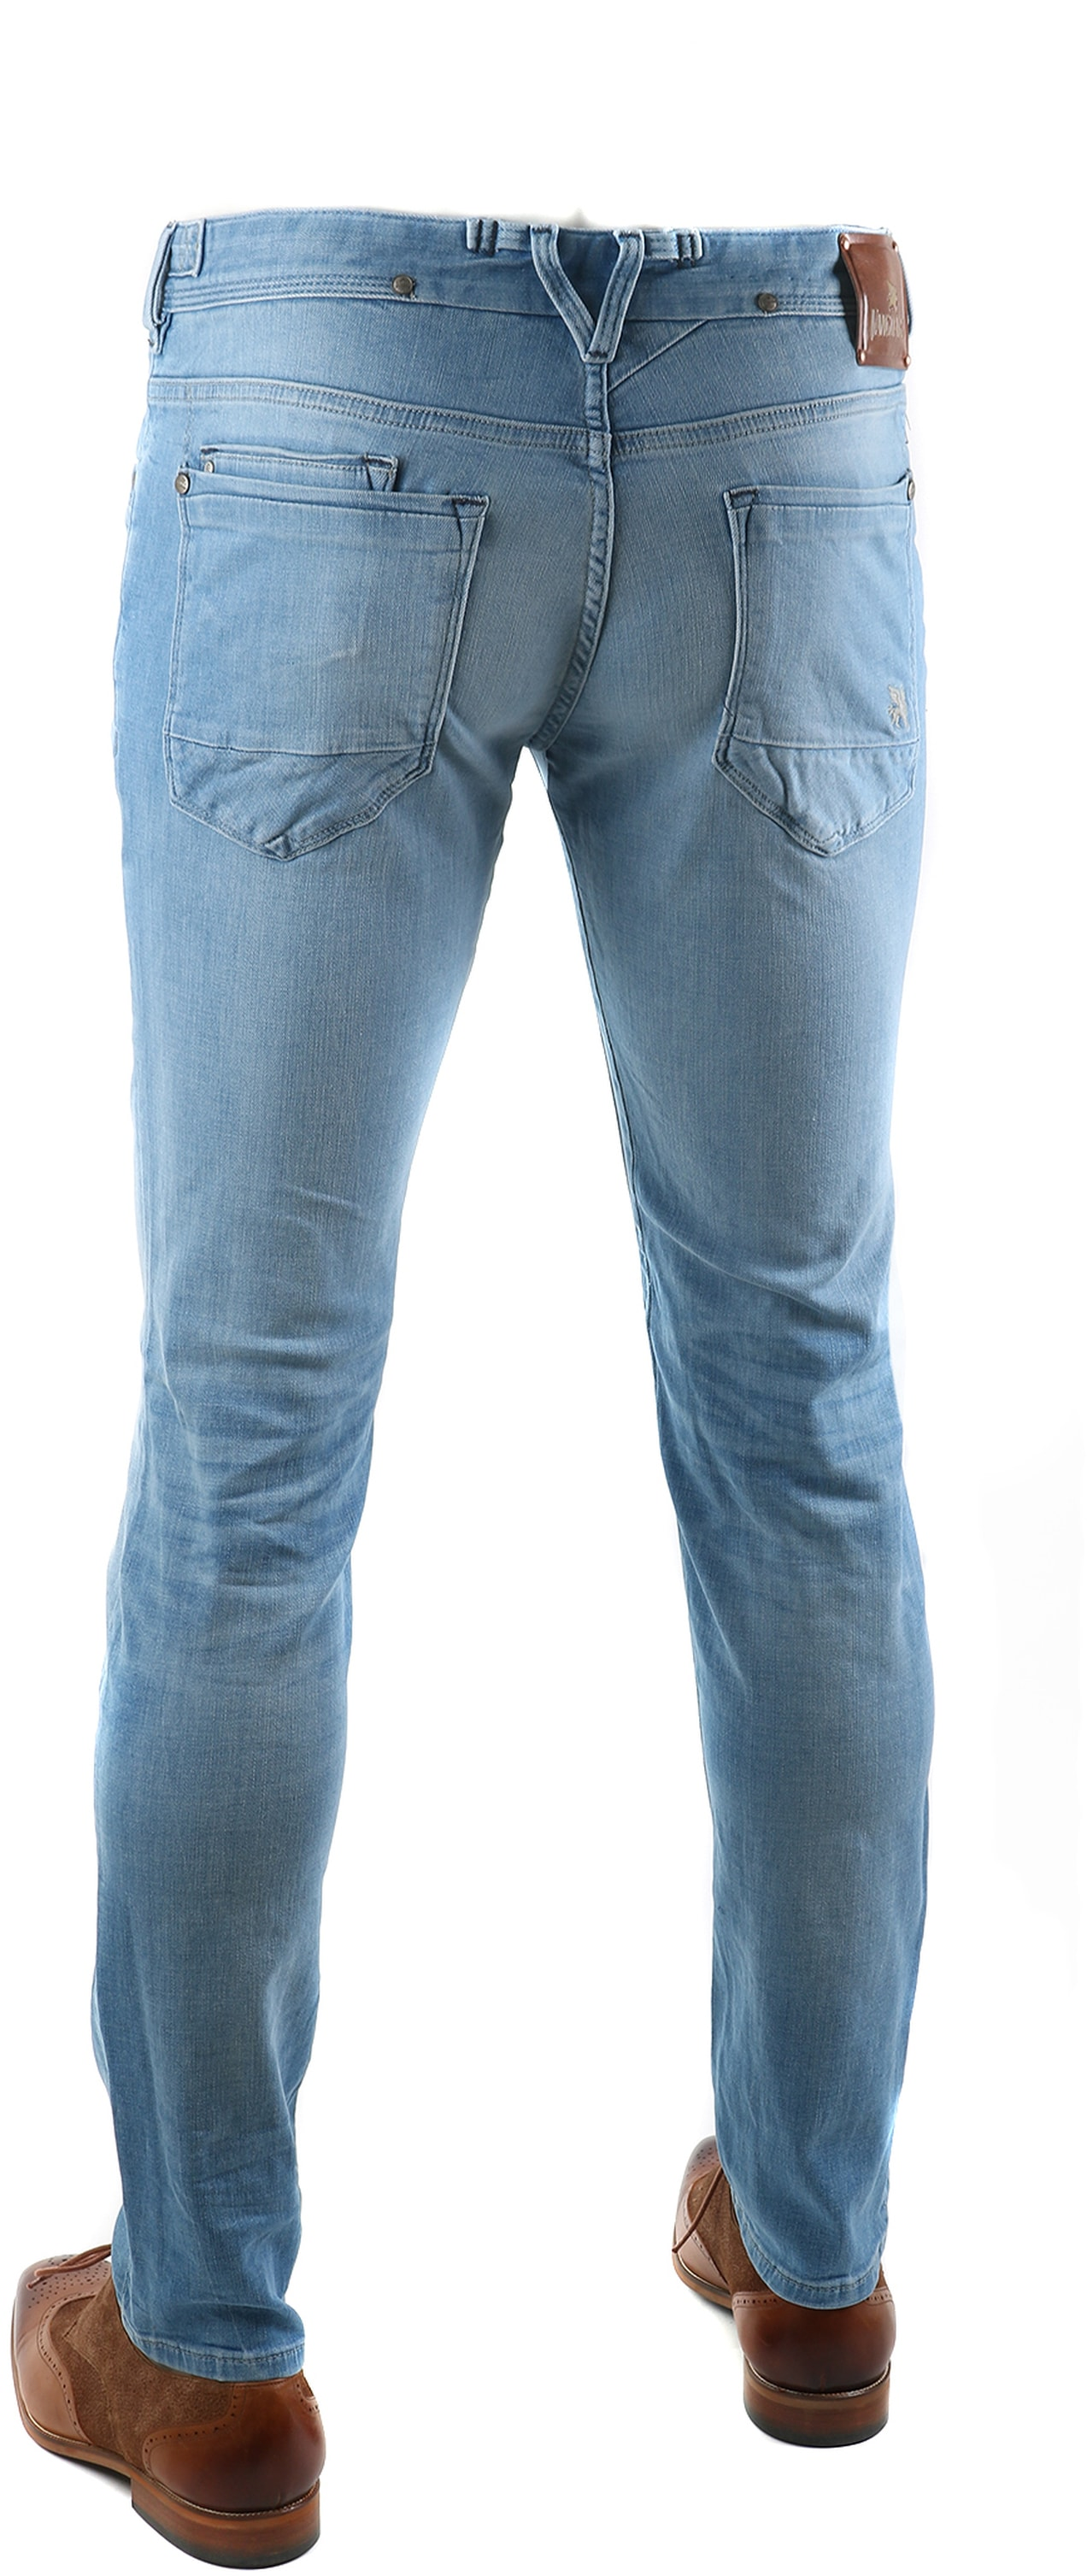 Vanguard V8 Racer Jeans Electric Blue foto 1